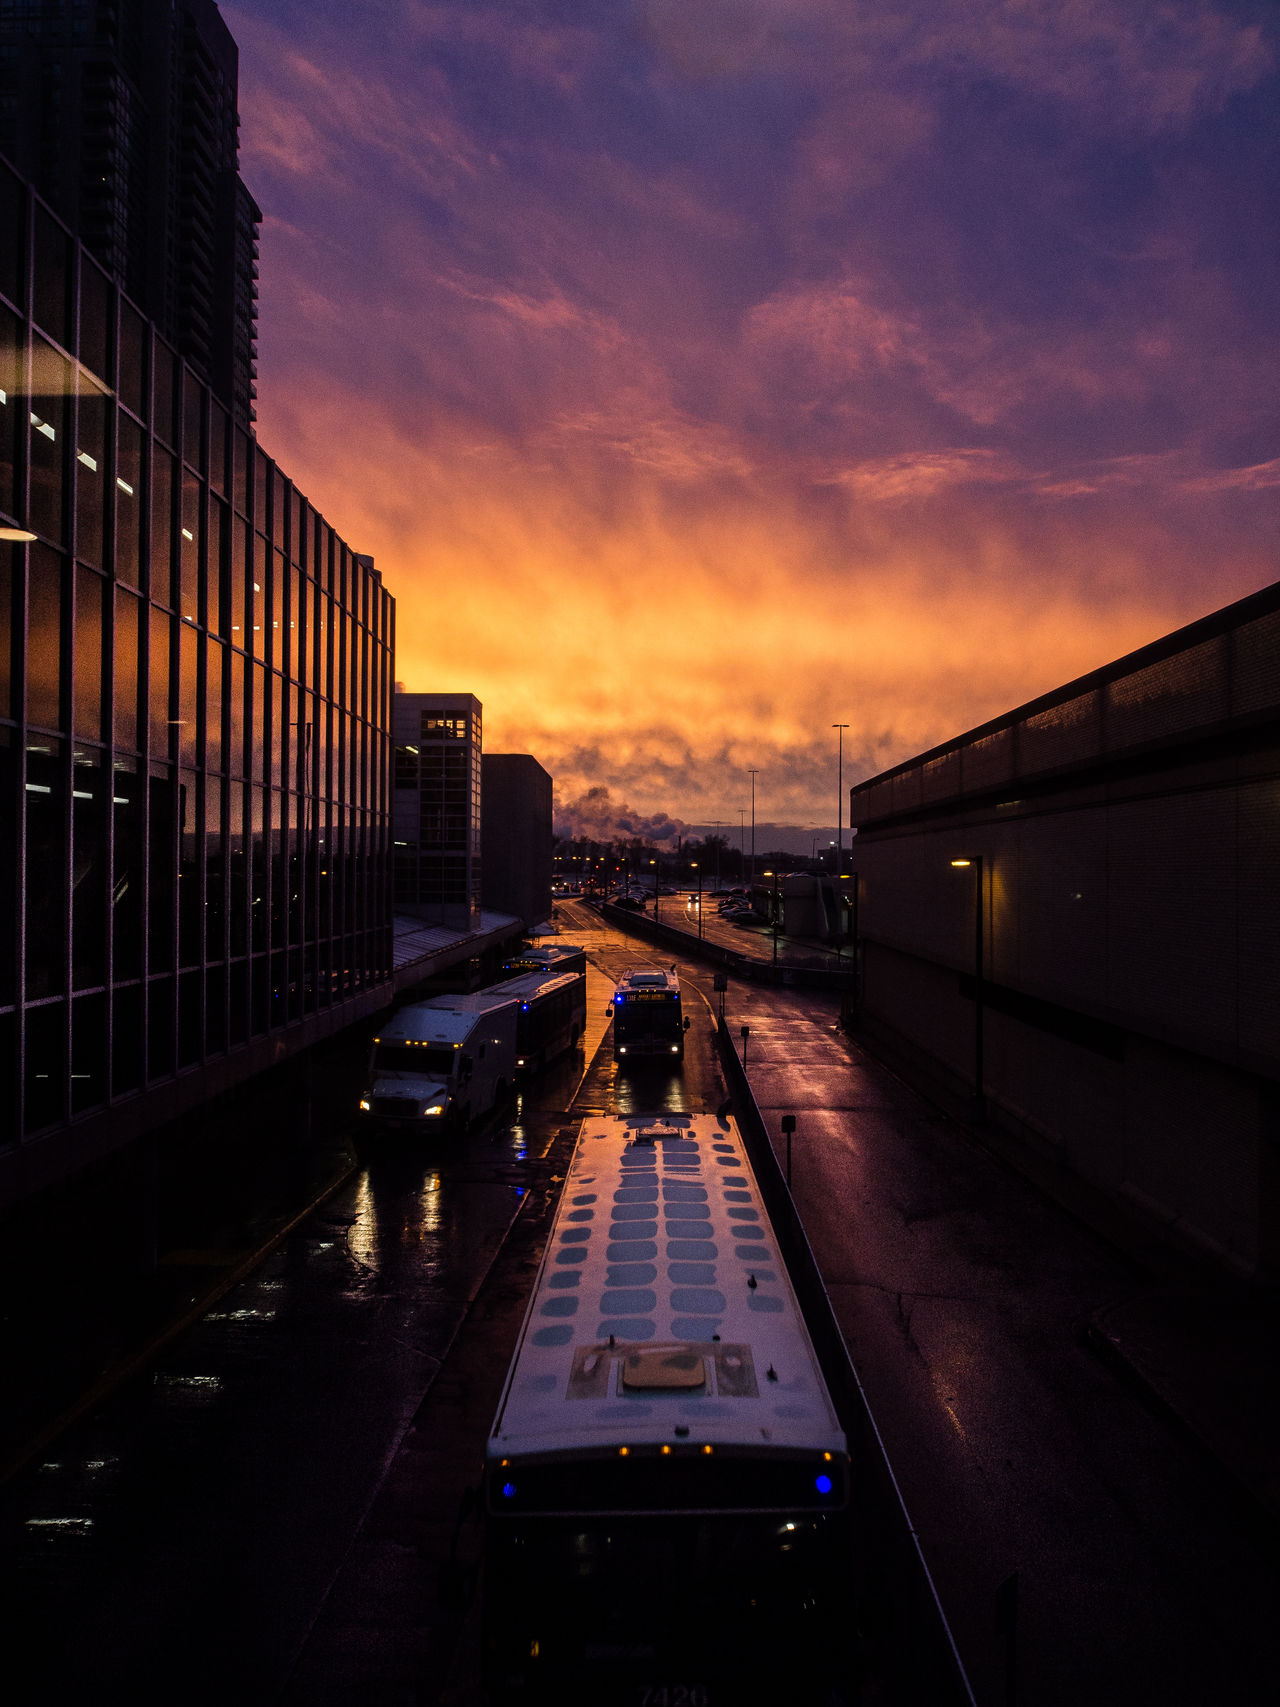 Architecture Car Cloud - Sky Day Mode Of Transport No People Outdoors Reflection Sky Sunset Transportation Travel